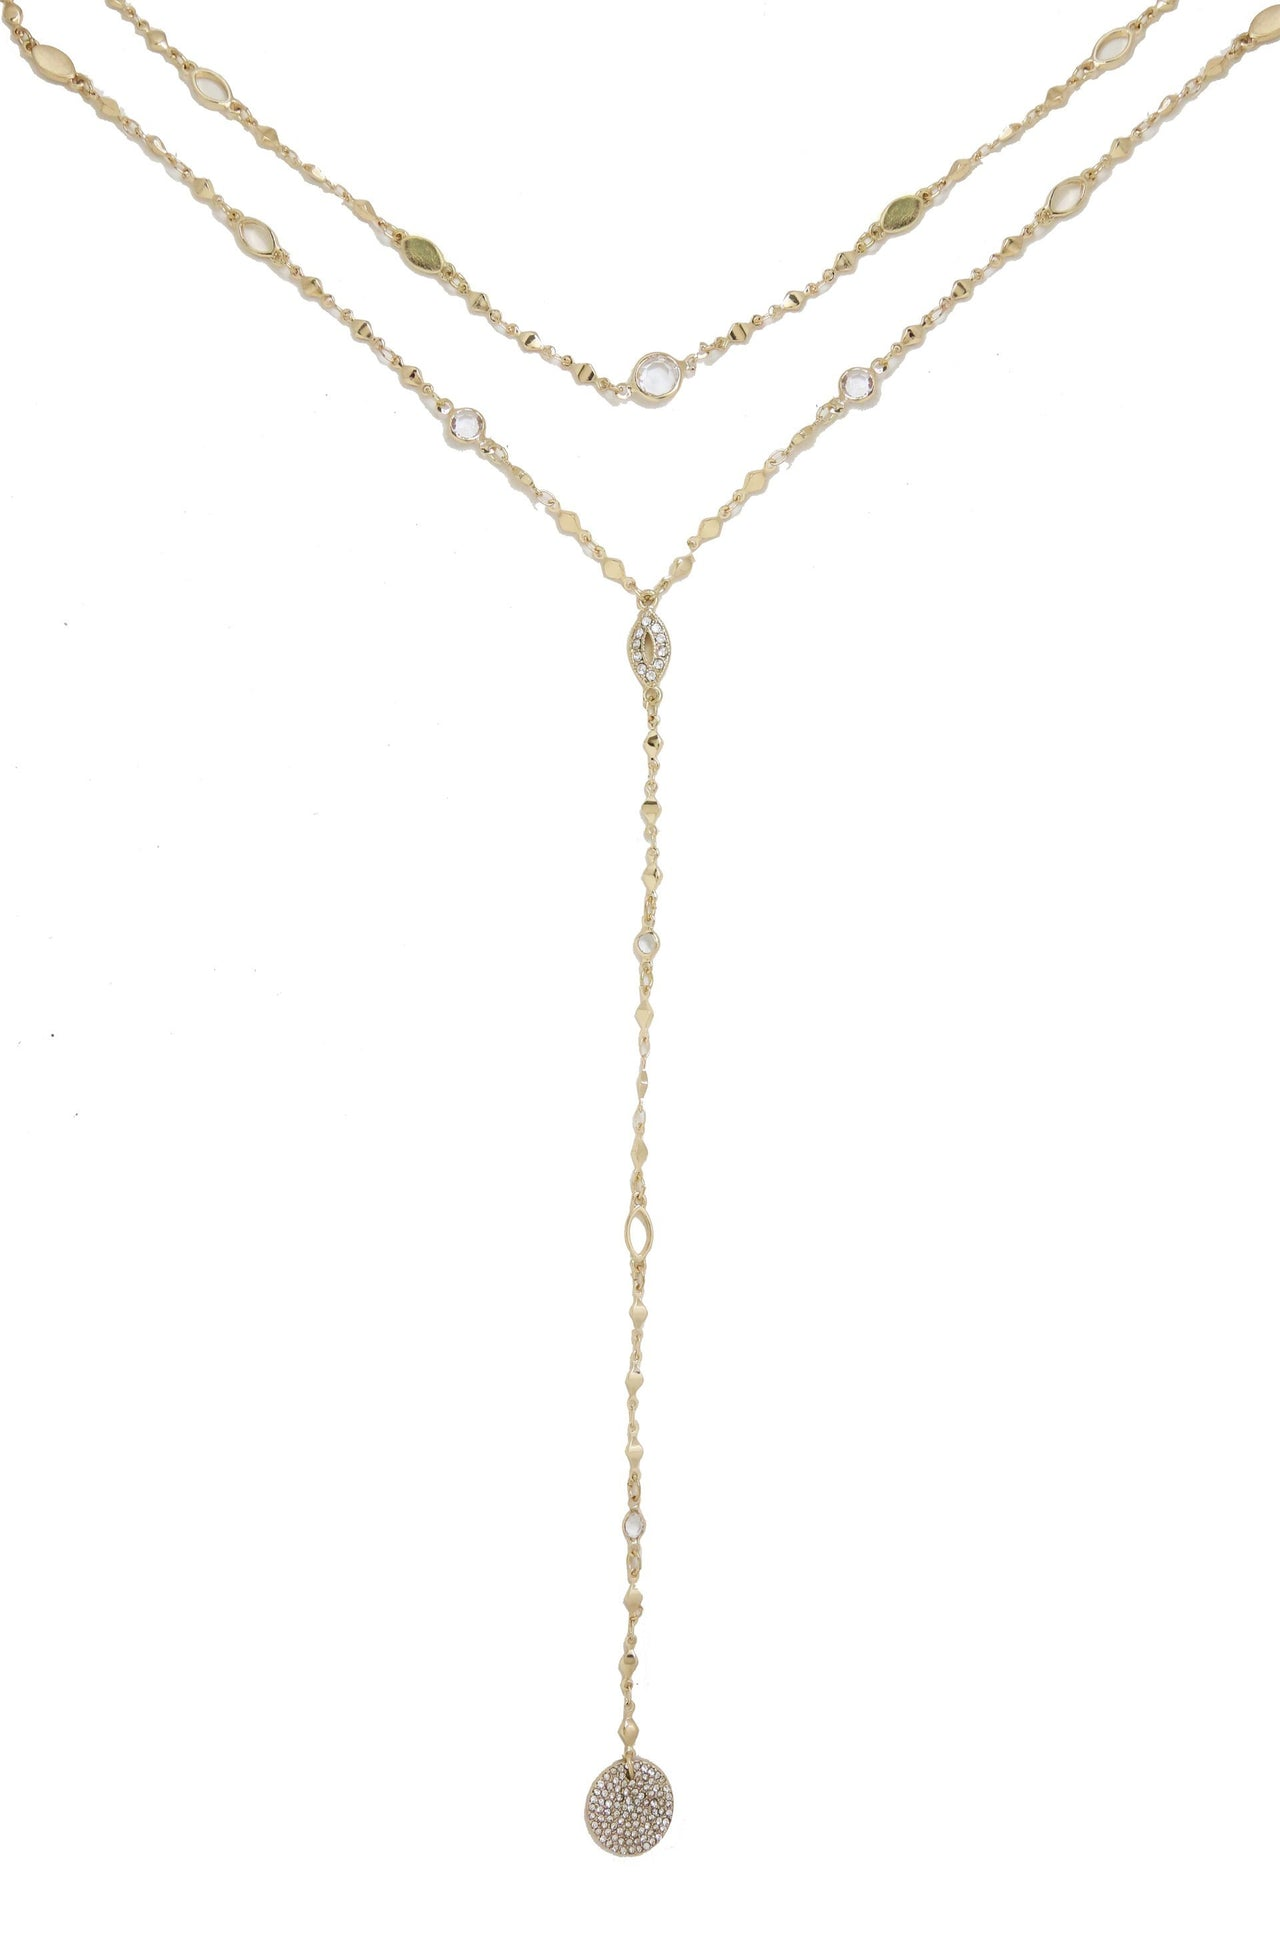 Delicate Crystal 18k Gold Plated Layered Lariat Necklace